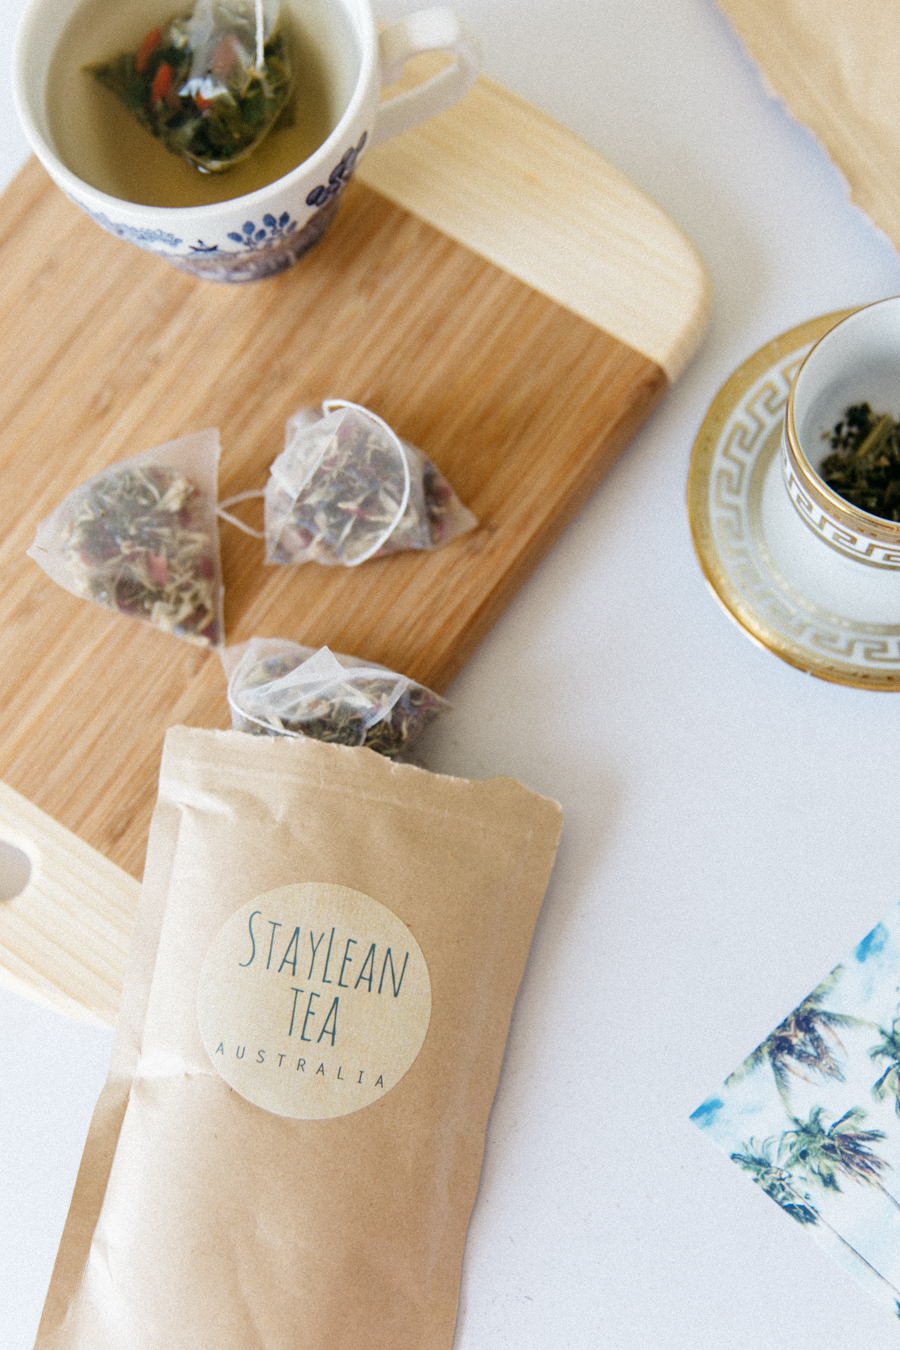 Stay lean tea review.